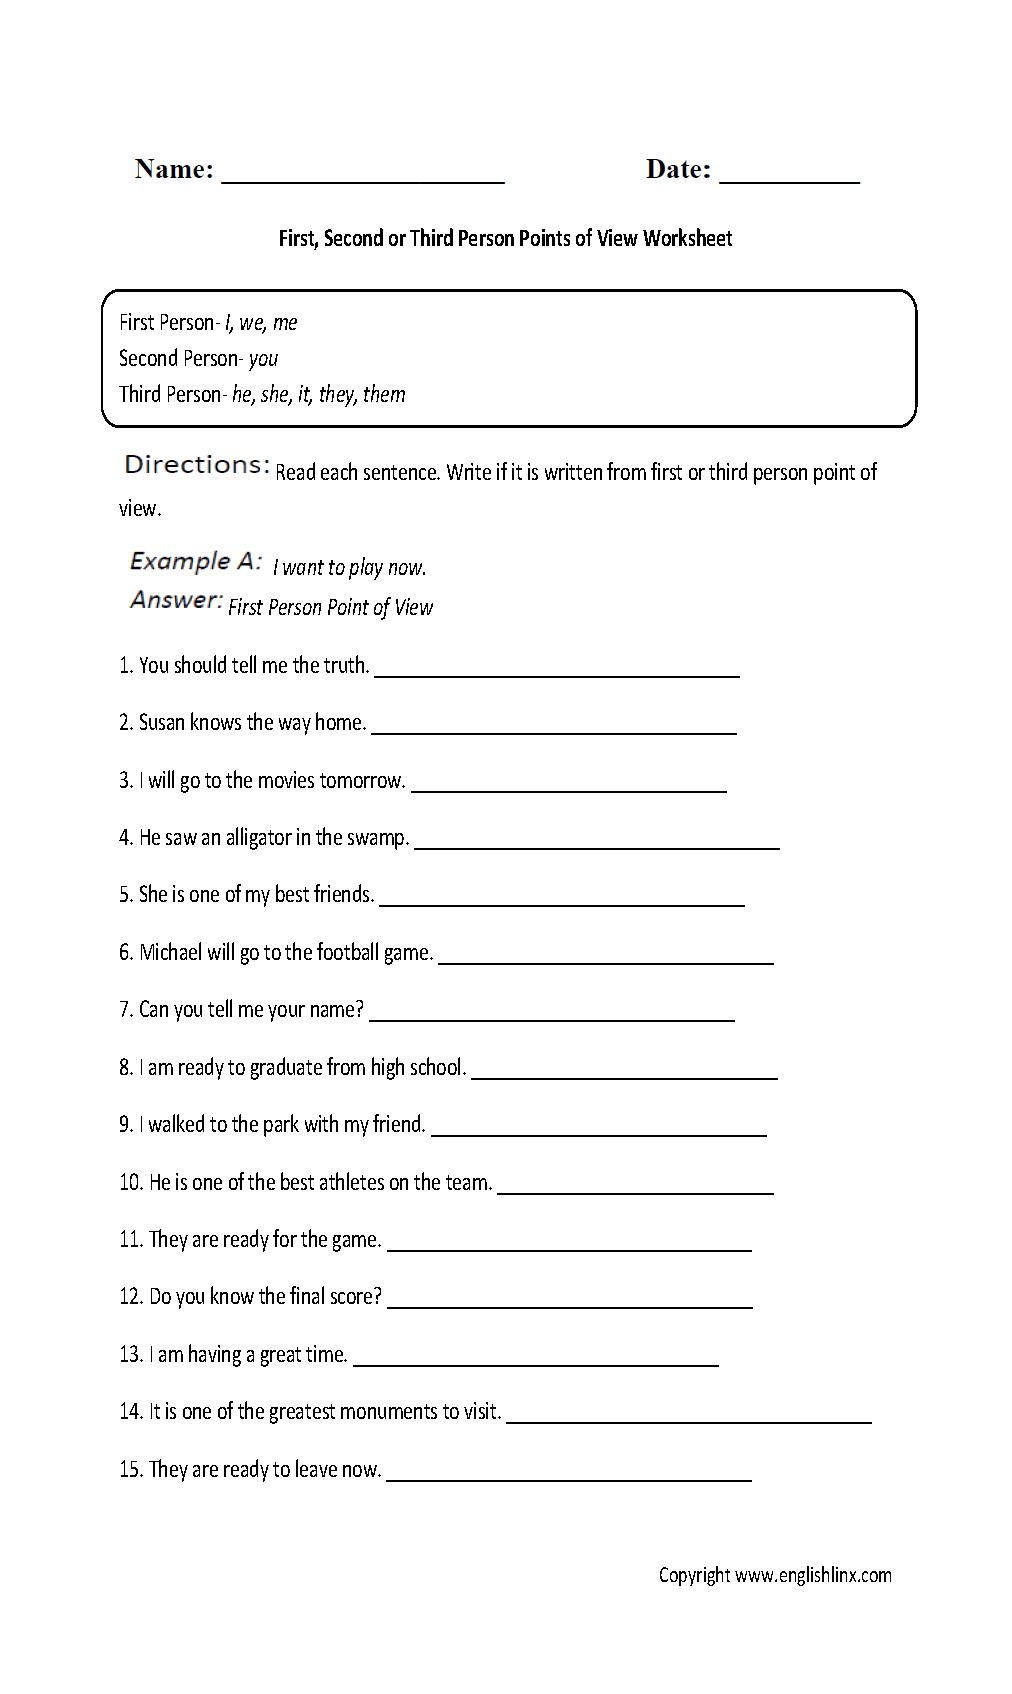 Weirdmailus  Pleasant Englishlinxcom  Point Of View Worksheets With Fascinating Point Of View Worksheet With Nice Maths Worksheet For Grade  Also Esl Writing Practice Worksheets In Addition Number Pattern Worksheets St Grade And Poetry Worksheets For Th Grade As Well As Worksheets On Complementary And Supplementary Angles Additionally Forming Numbers Worksheets From Englishlinxcom With Weirdmailus  Fascinating Englishlinxcom  Point Of View Worksheets With Nice Point Of View Worksheet And Pleasant Maths Worksheet For Grade  Also Esl Writing Practice Worksheets In Addition Number Pattern Worksheets St Grade From Englishlinxcom